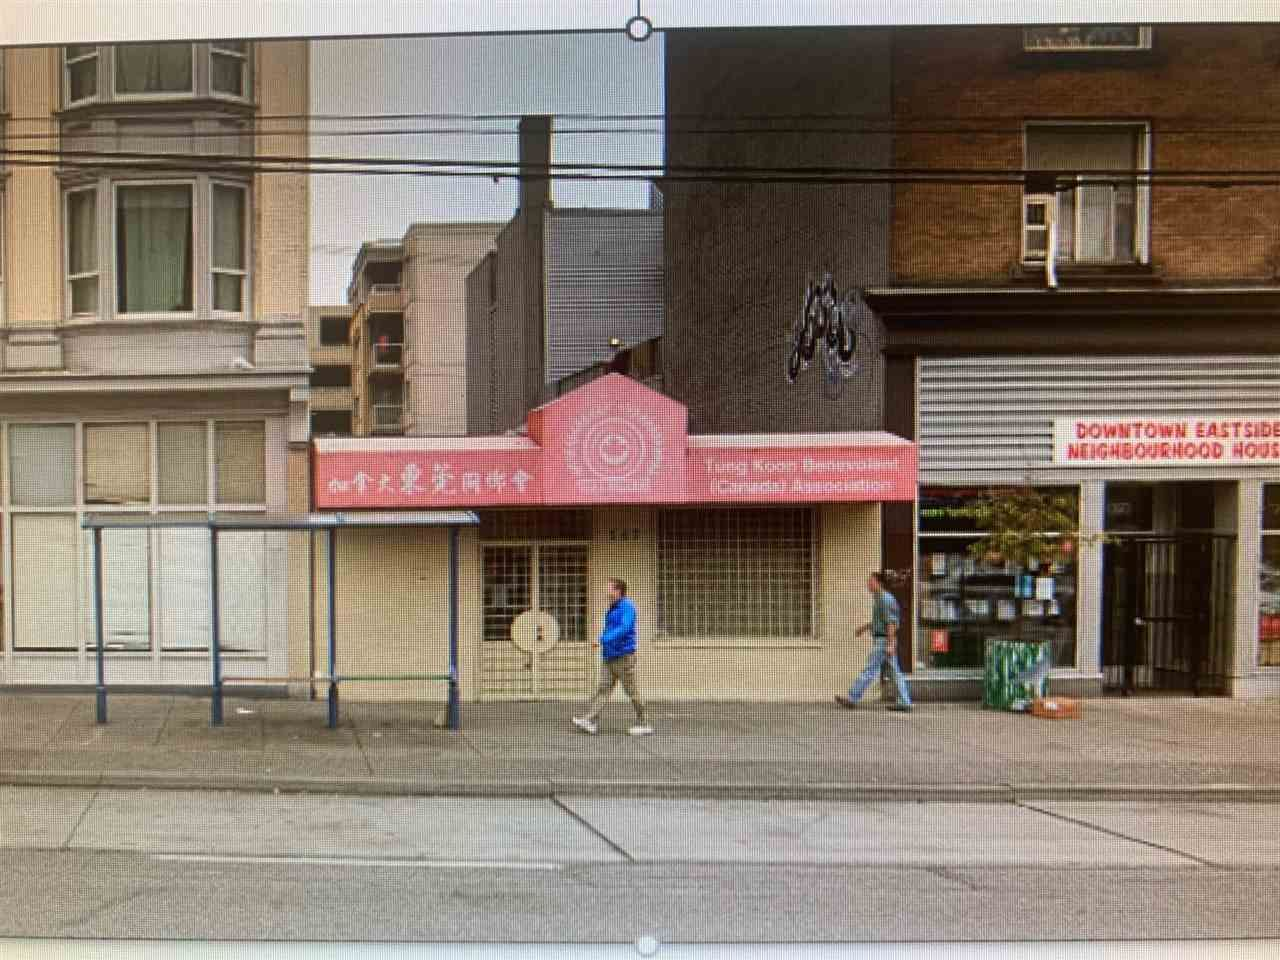 Main Photo: 567 E HASTINGS Street in Vancouver: Strathcona Office for sale (Vancouver East)  : MLS®# C8037224